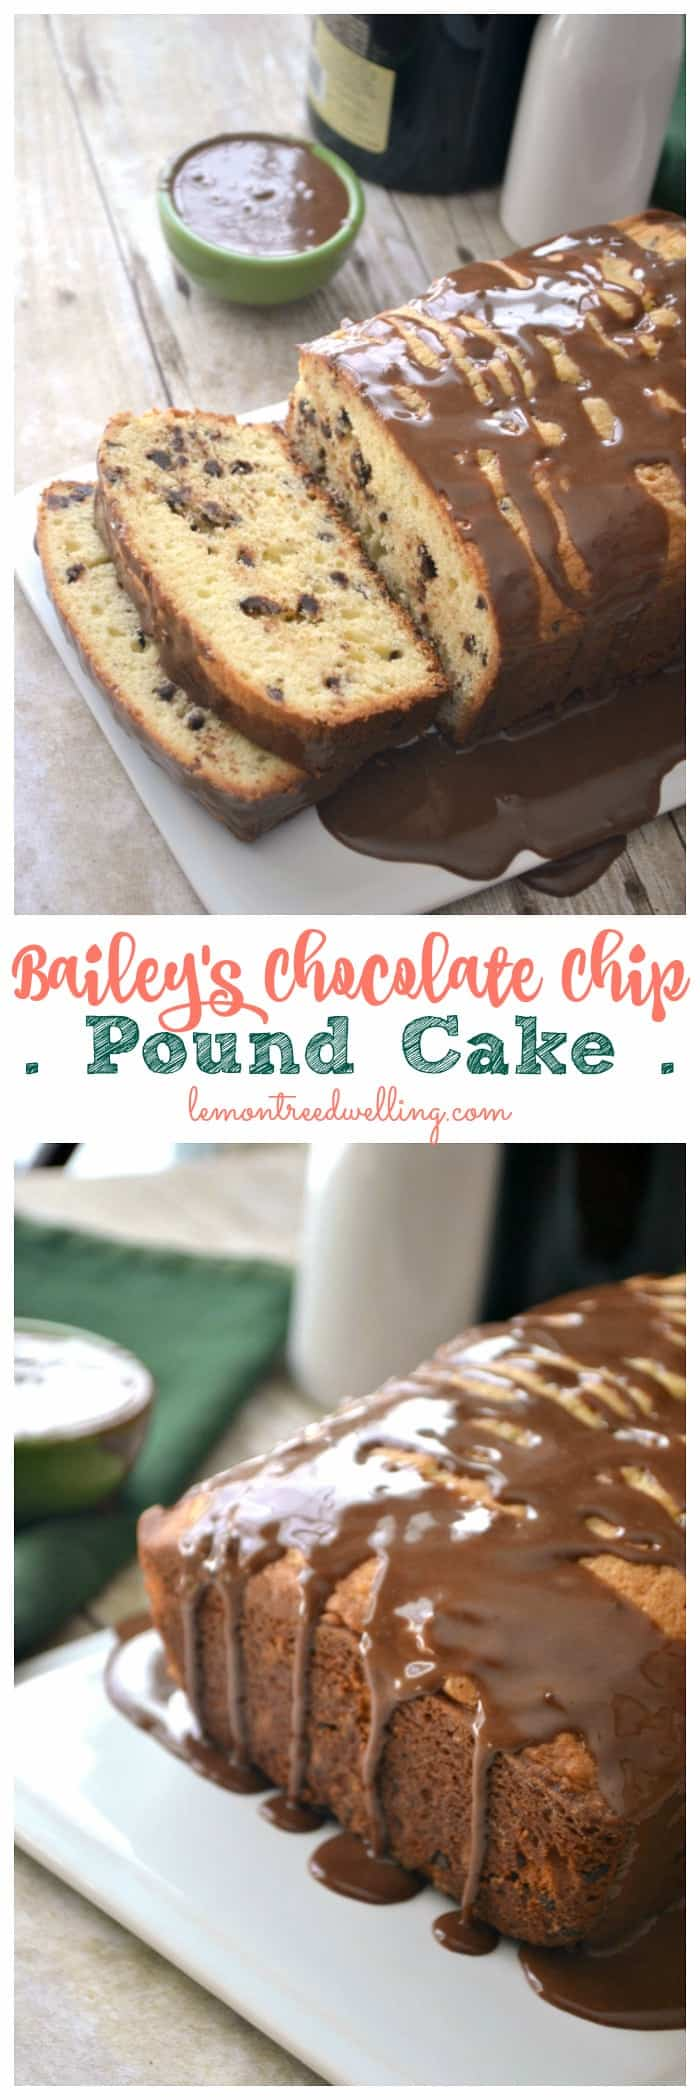 Chocolate Pound Cake With Sour Cream And Chocolate Chips